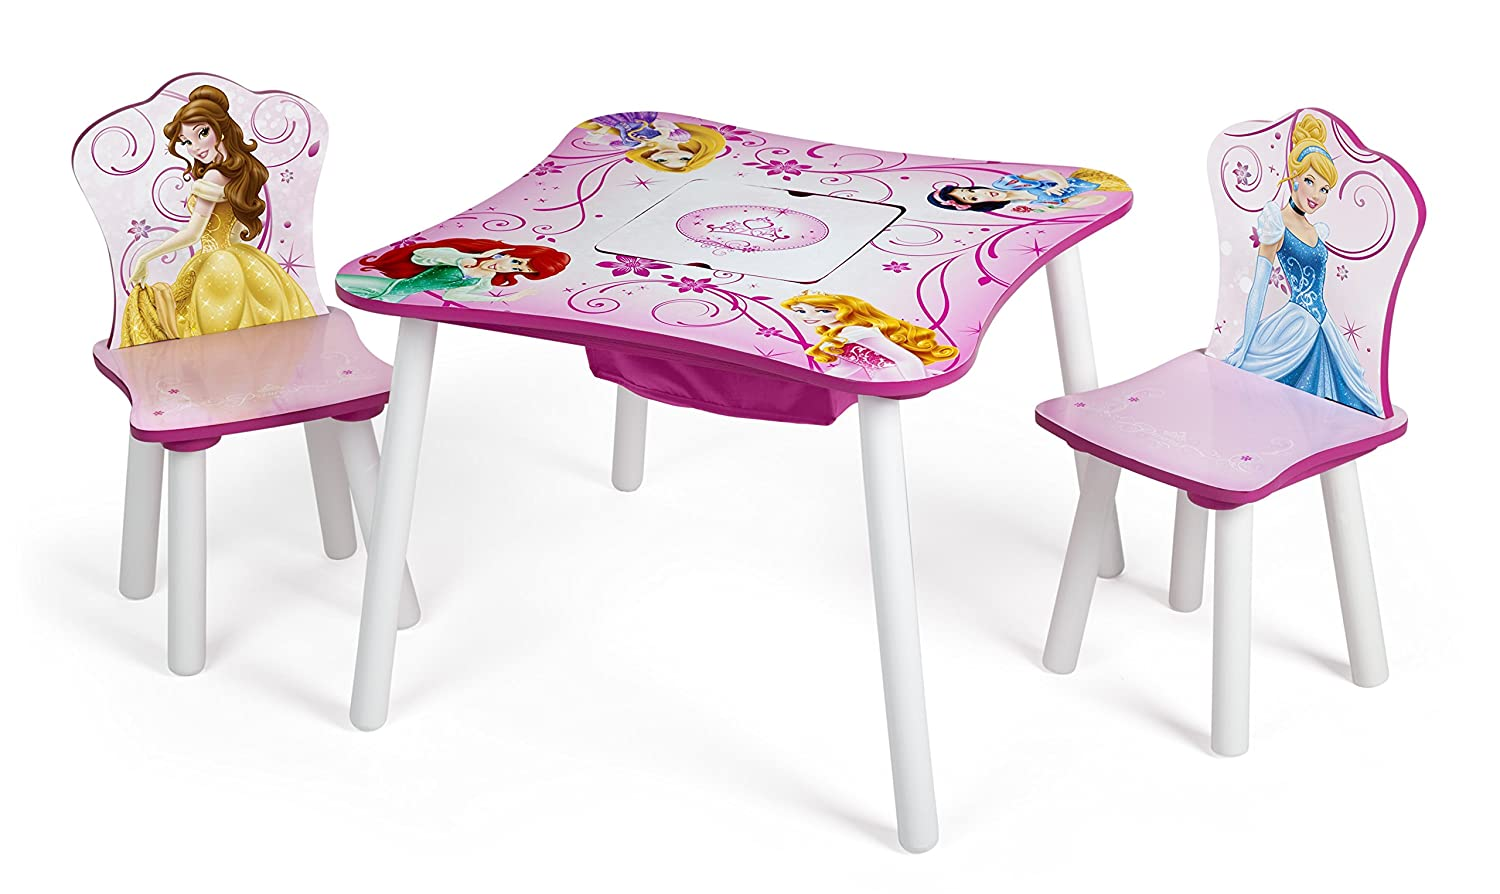 Astonishing Kids Character Table And Chair Set Pictures - Best Image ...